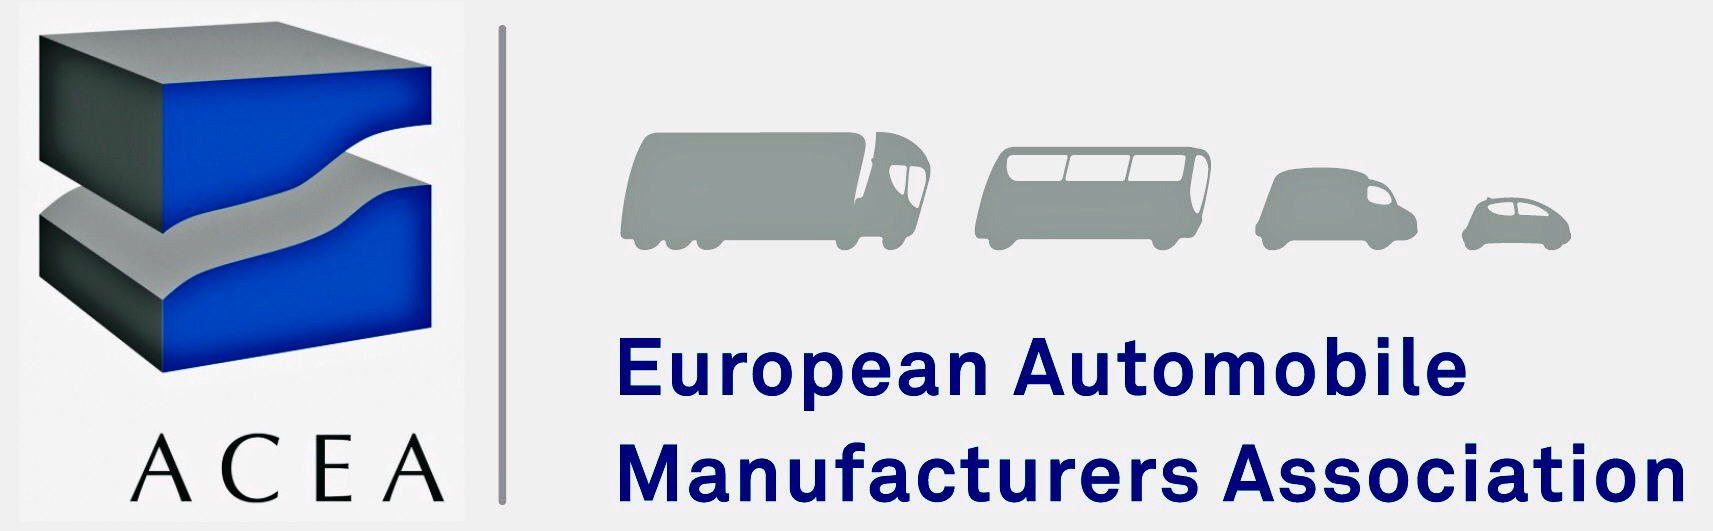 ACEA  European Automobile Manufacturers Association